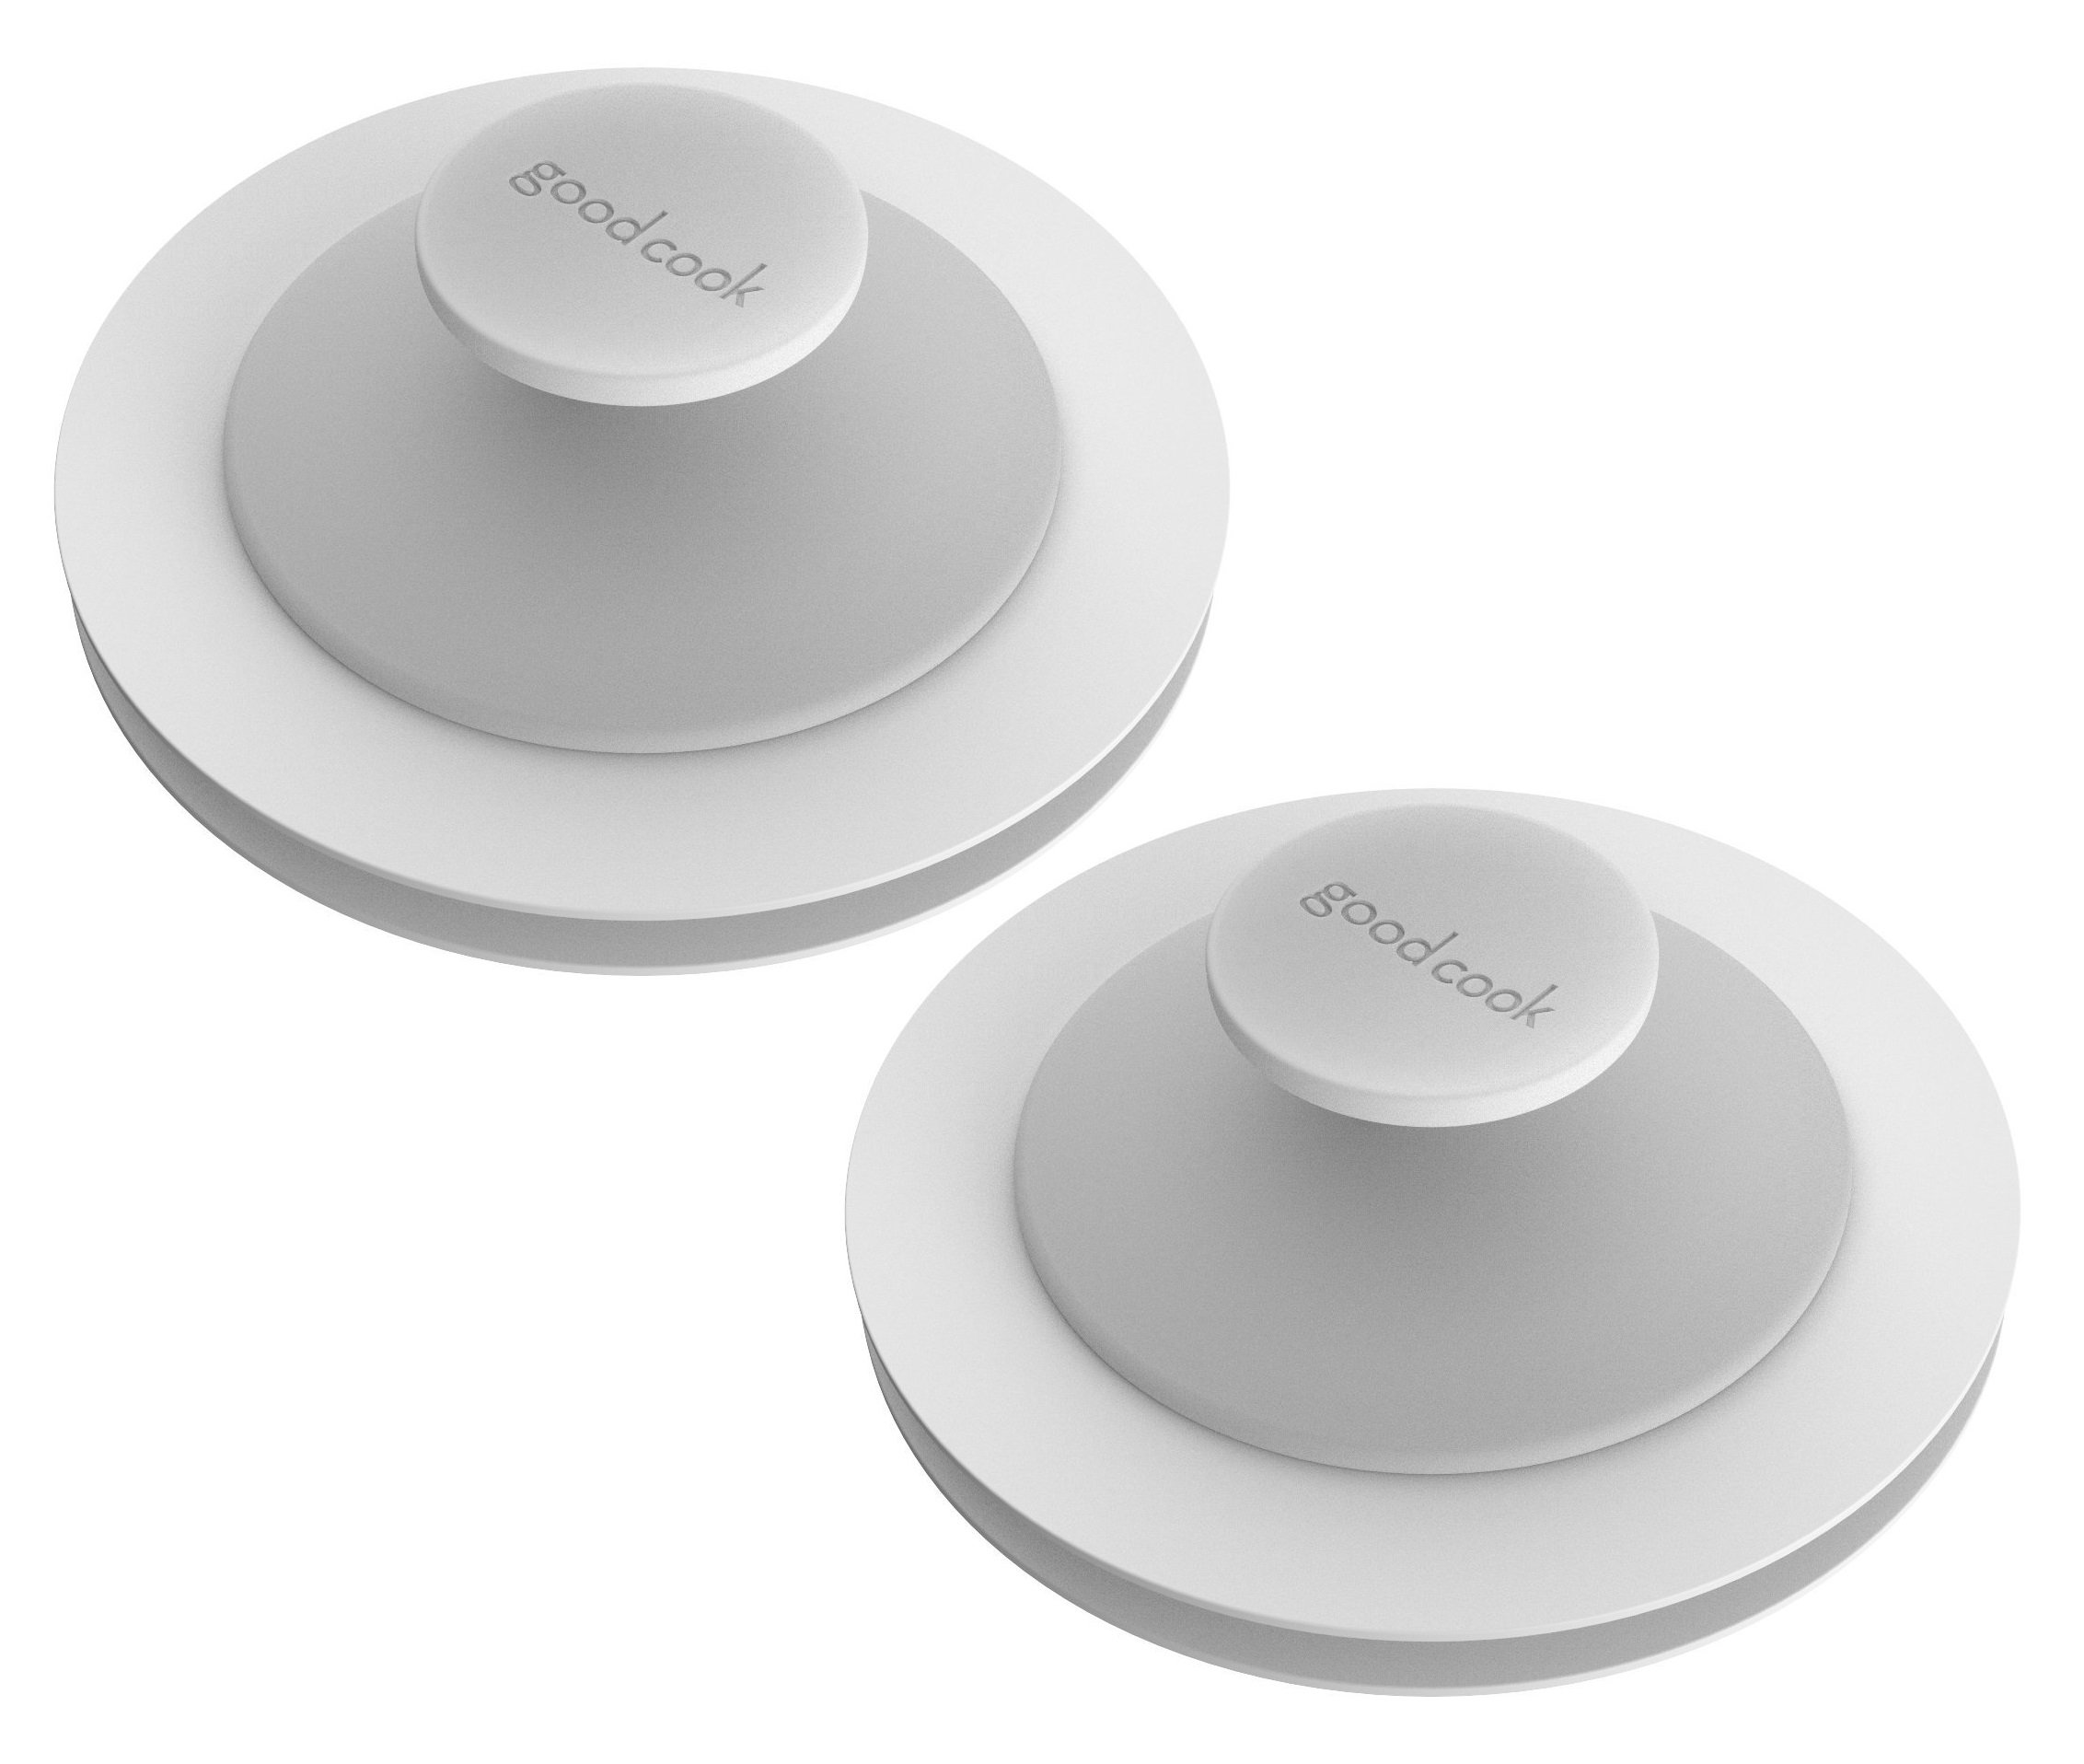 (2 Pack) Good Cook Kitchen Sink Stopper